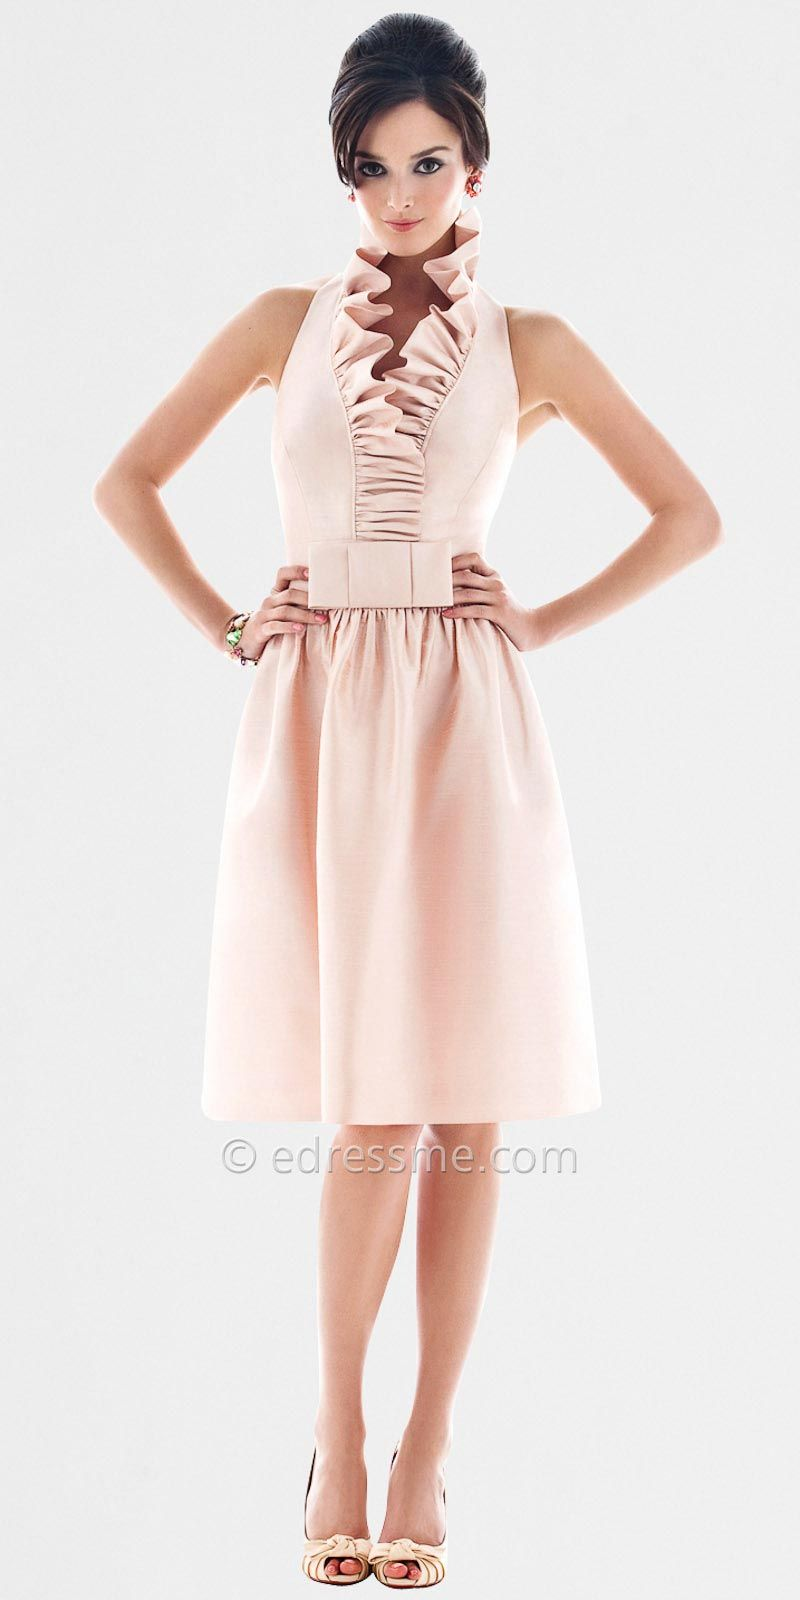 Rose colored wedding dress  Classy bridesmaid dress  Gray and dusty rose color scheme